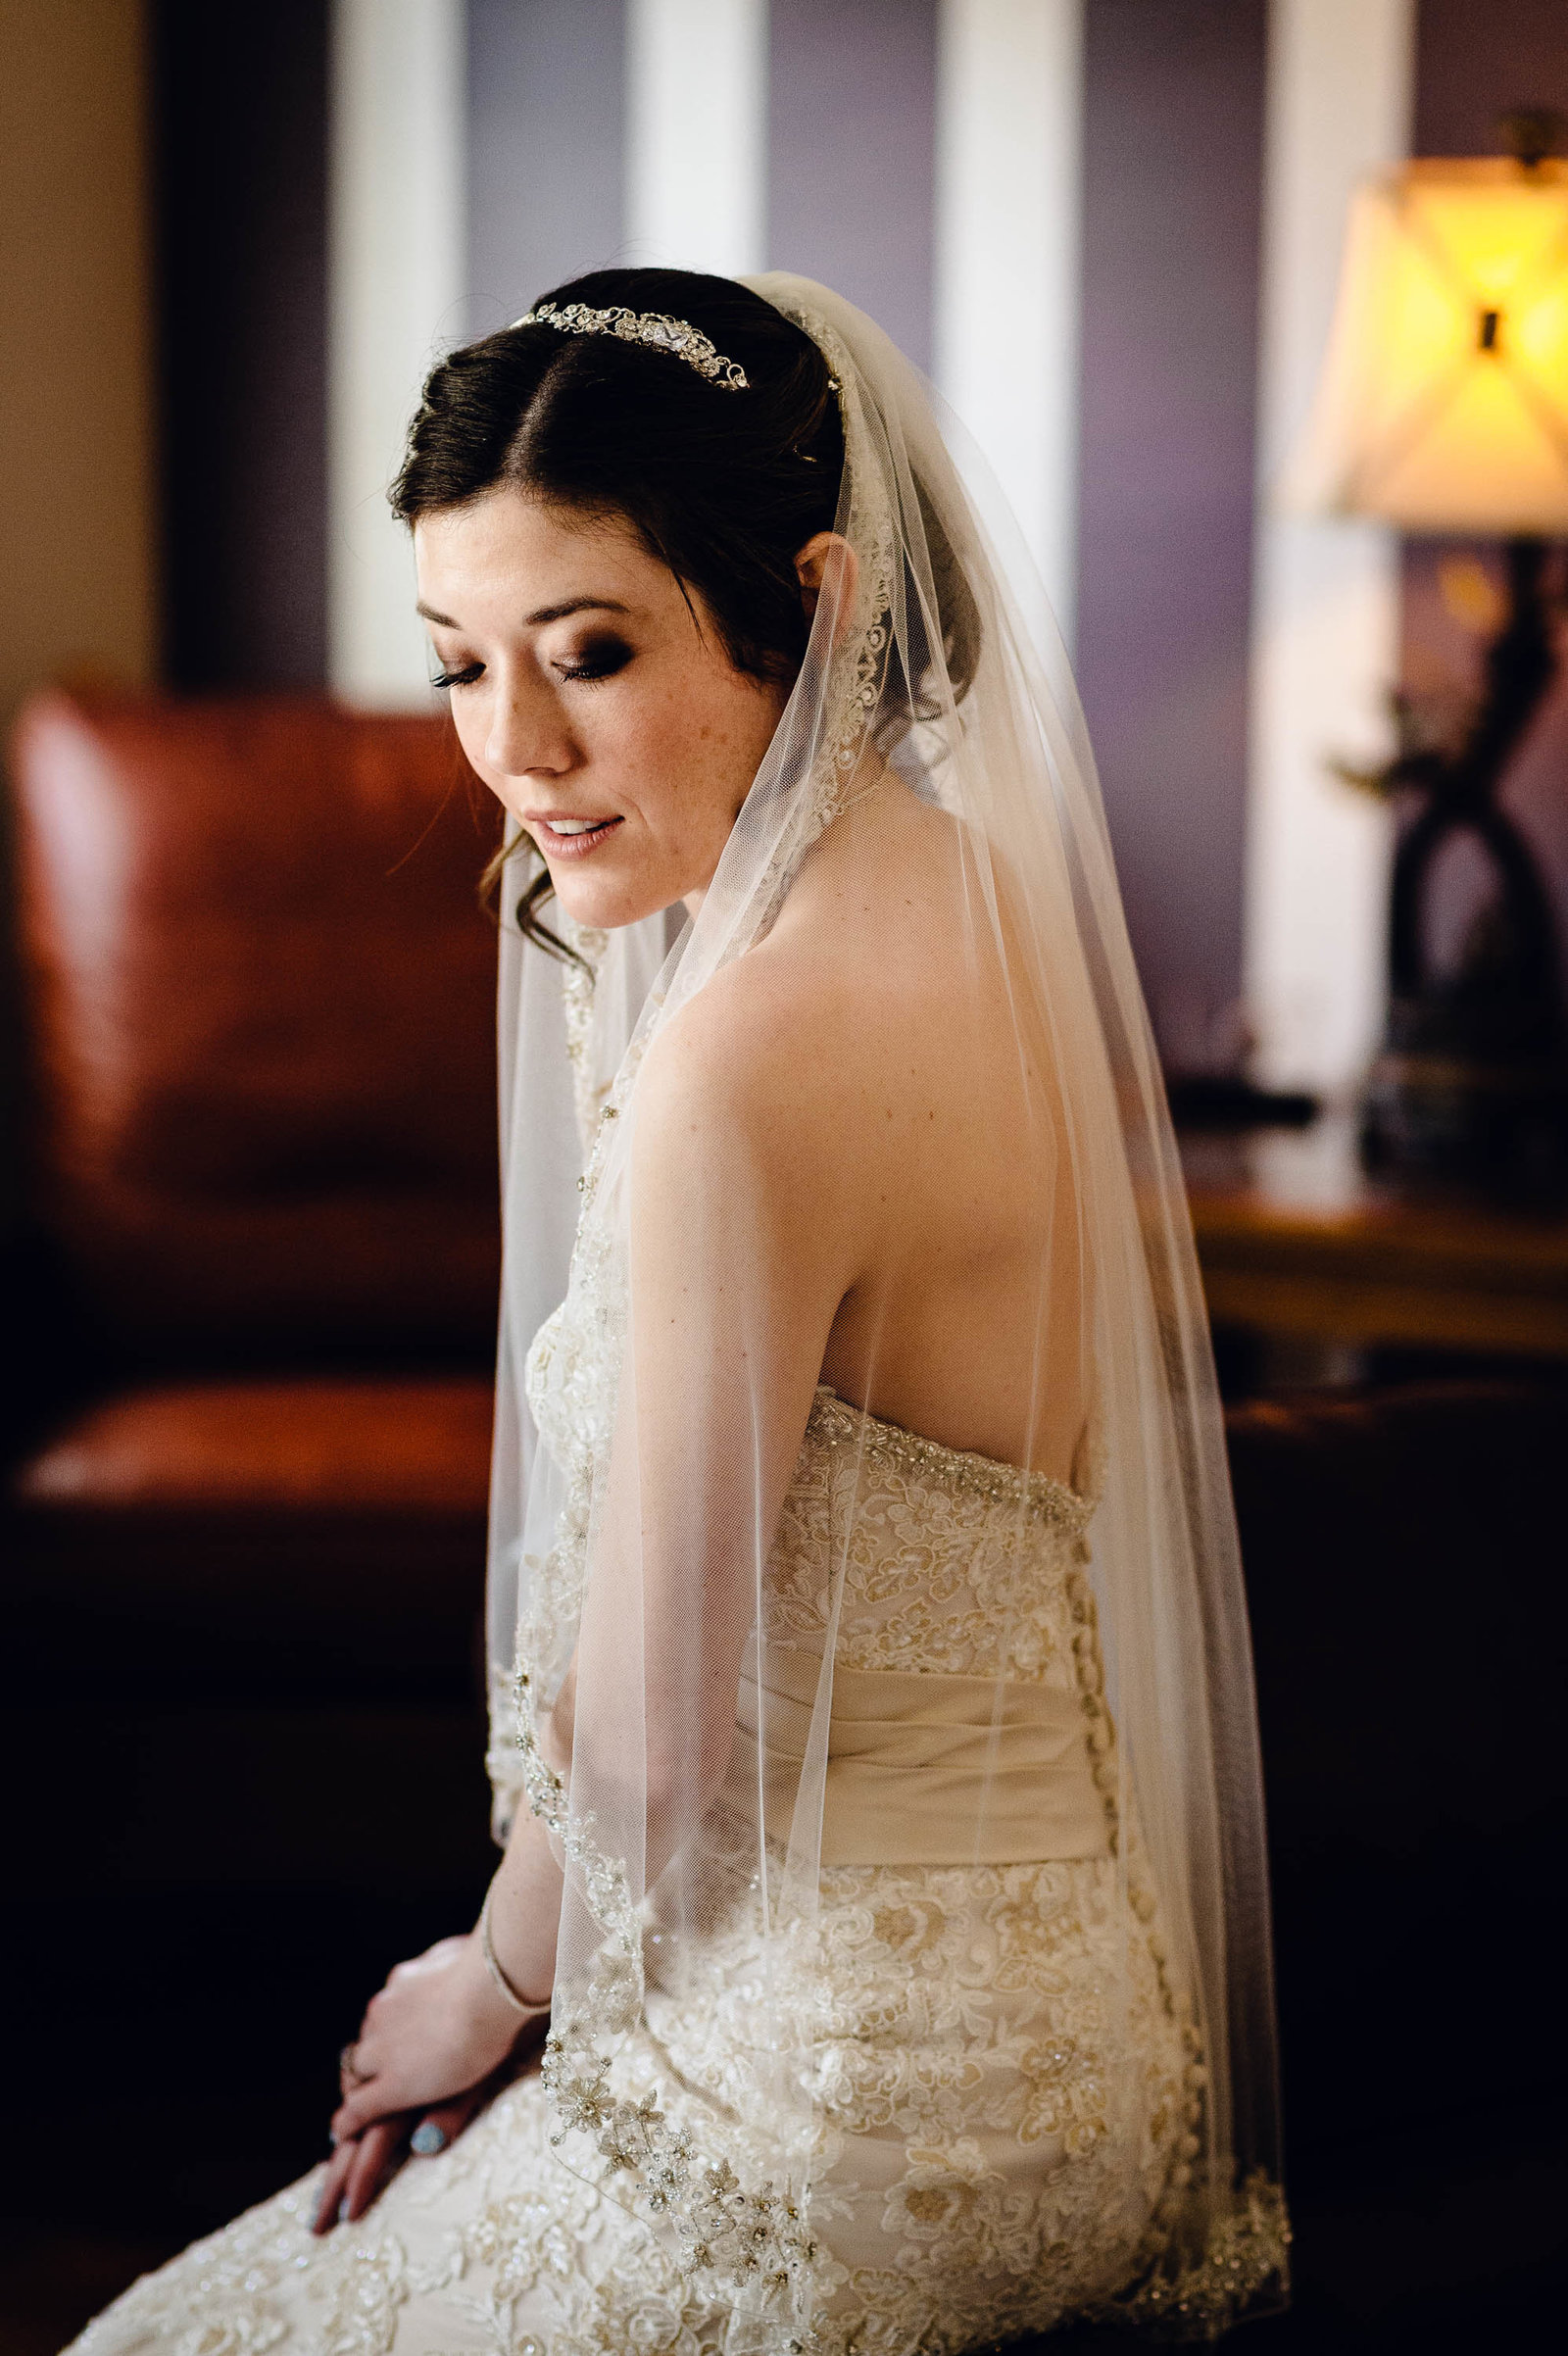 282-El-paso-wedding-photographer-El Paso Wedding Photographer_B20